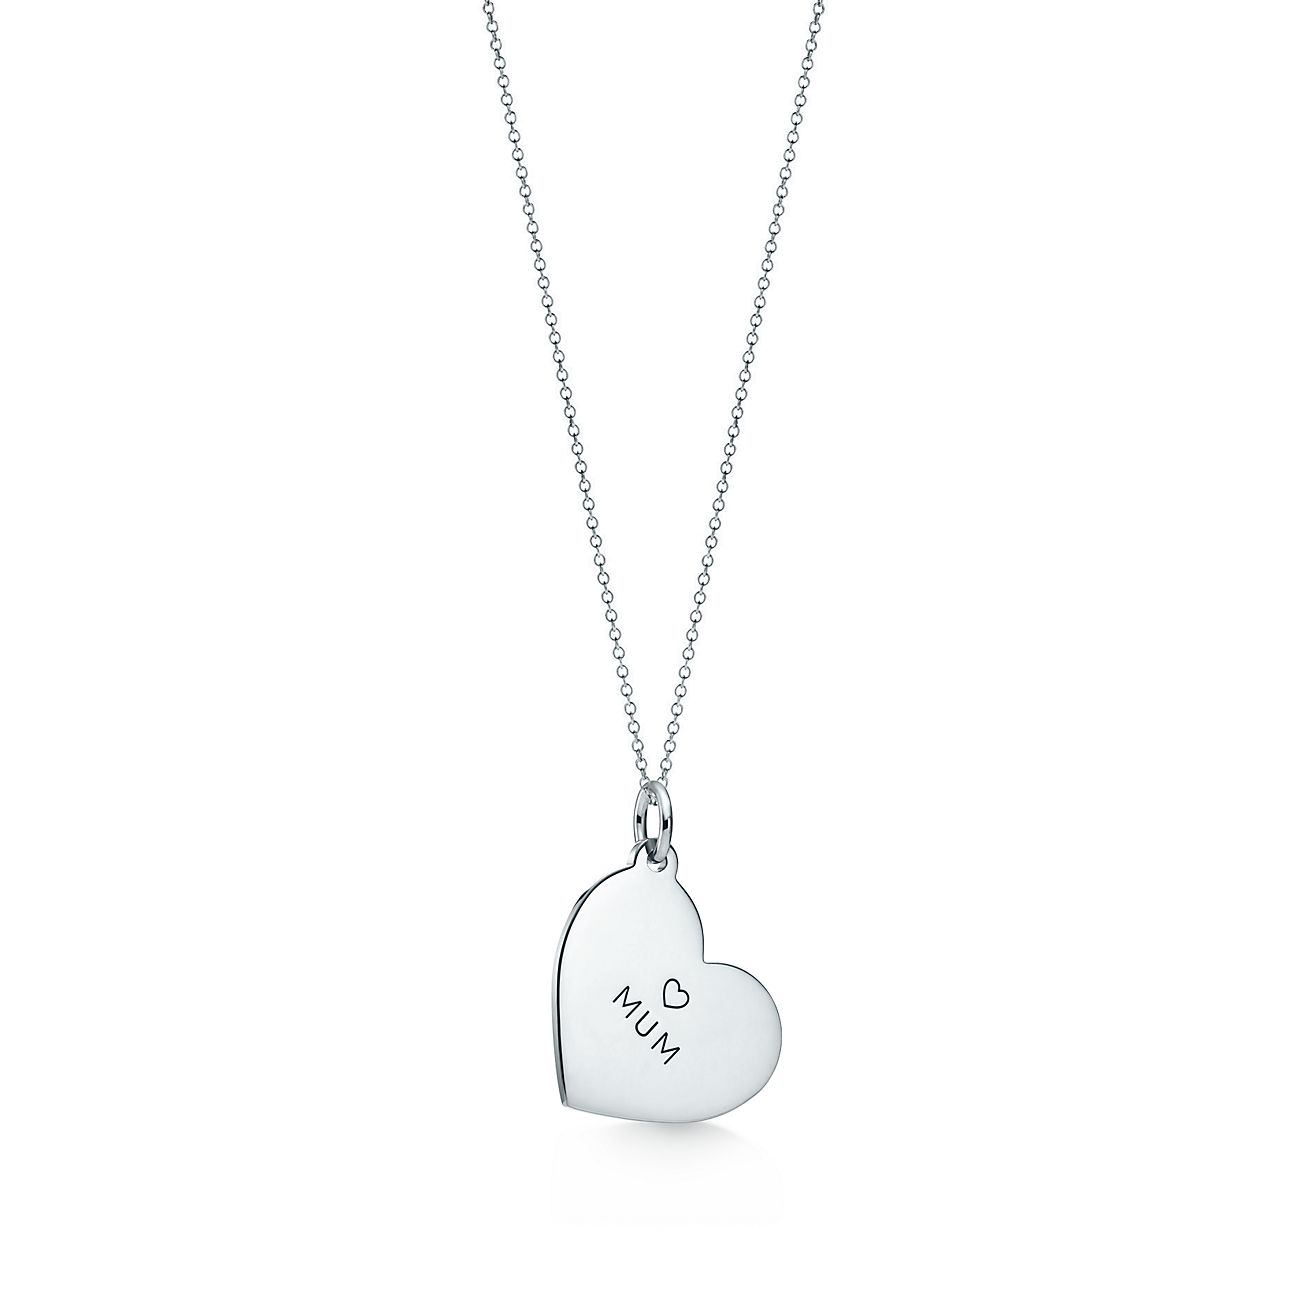 Tiffany charms mum heart tag in sterling silver medium tiffany tiffany charmsmum heart tag aloadofball Image collections